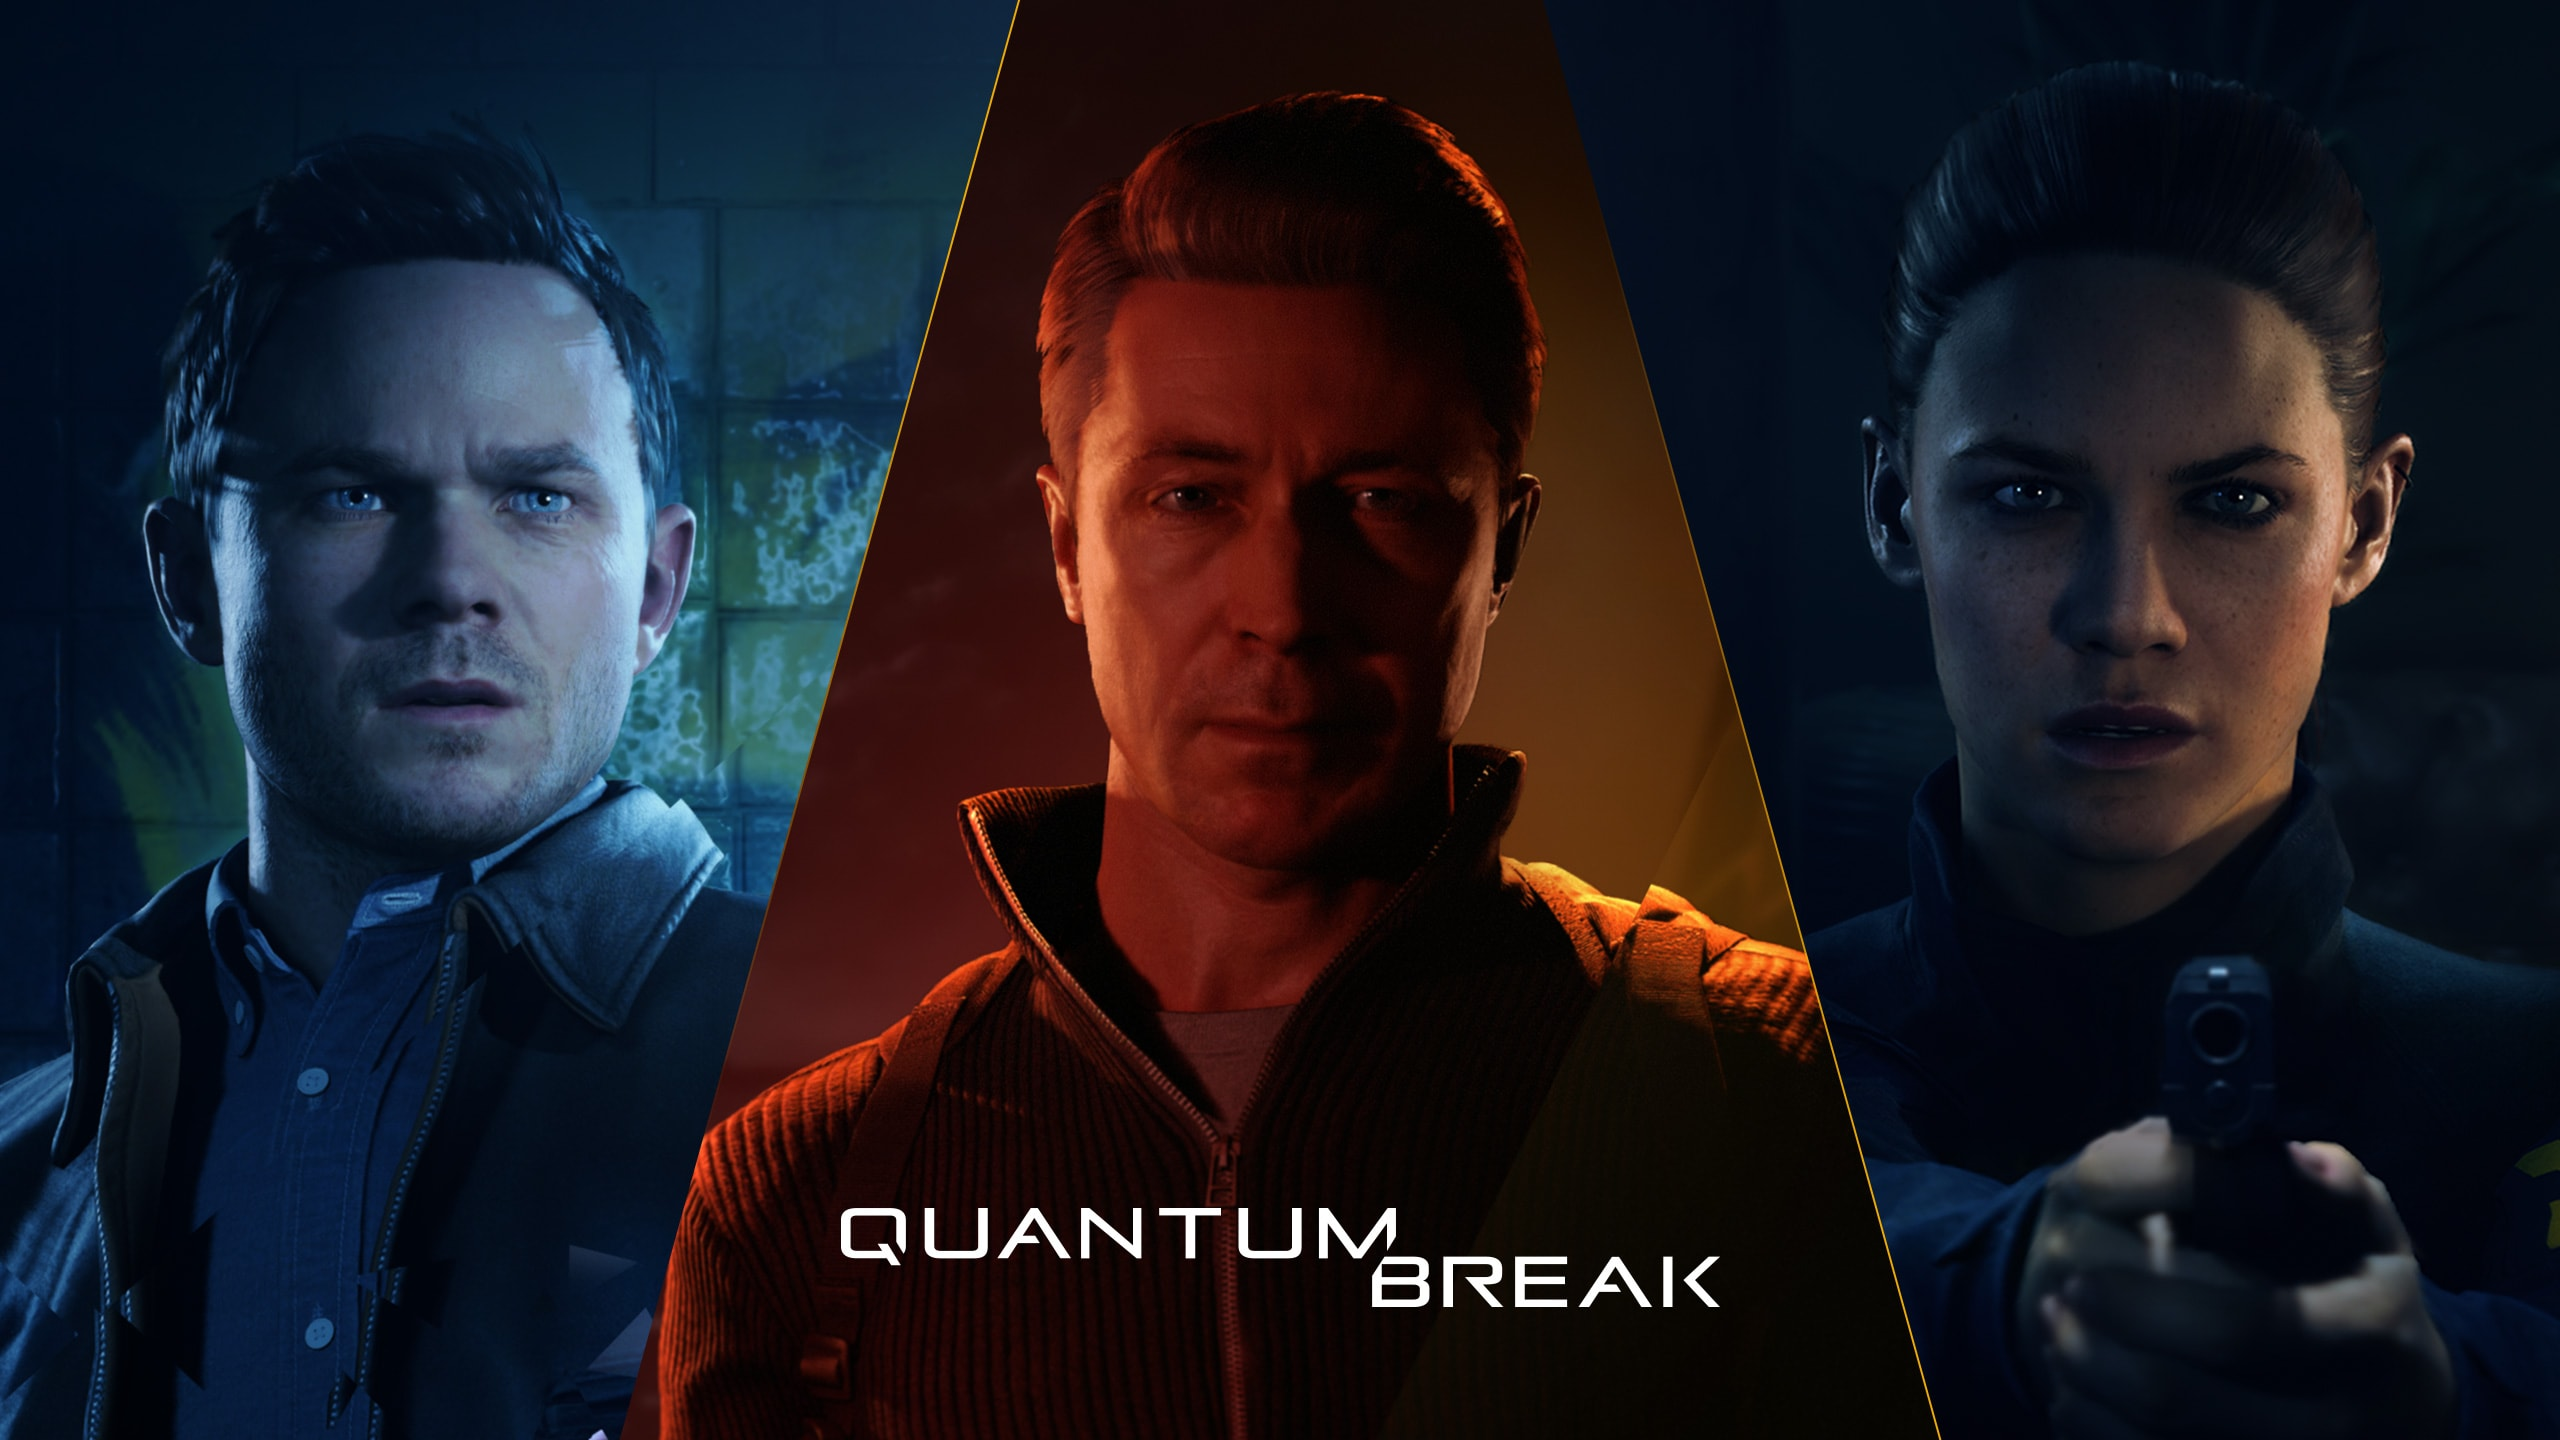 Quantum Break Wallpaper